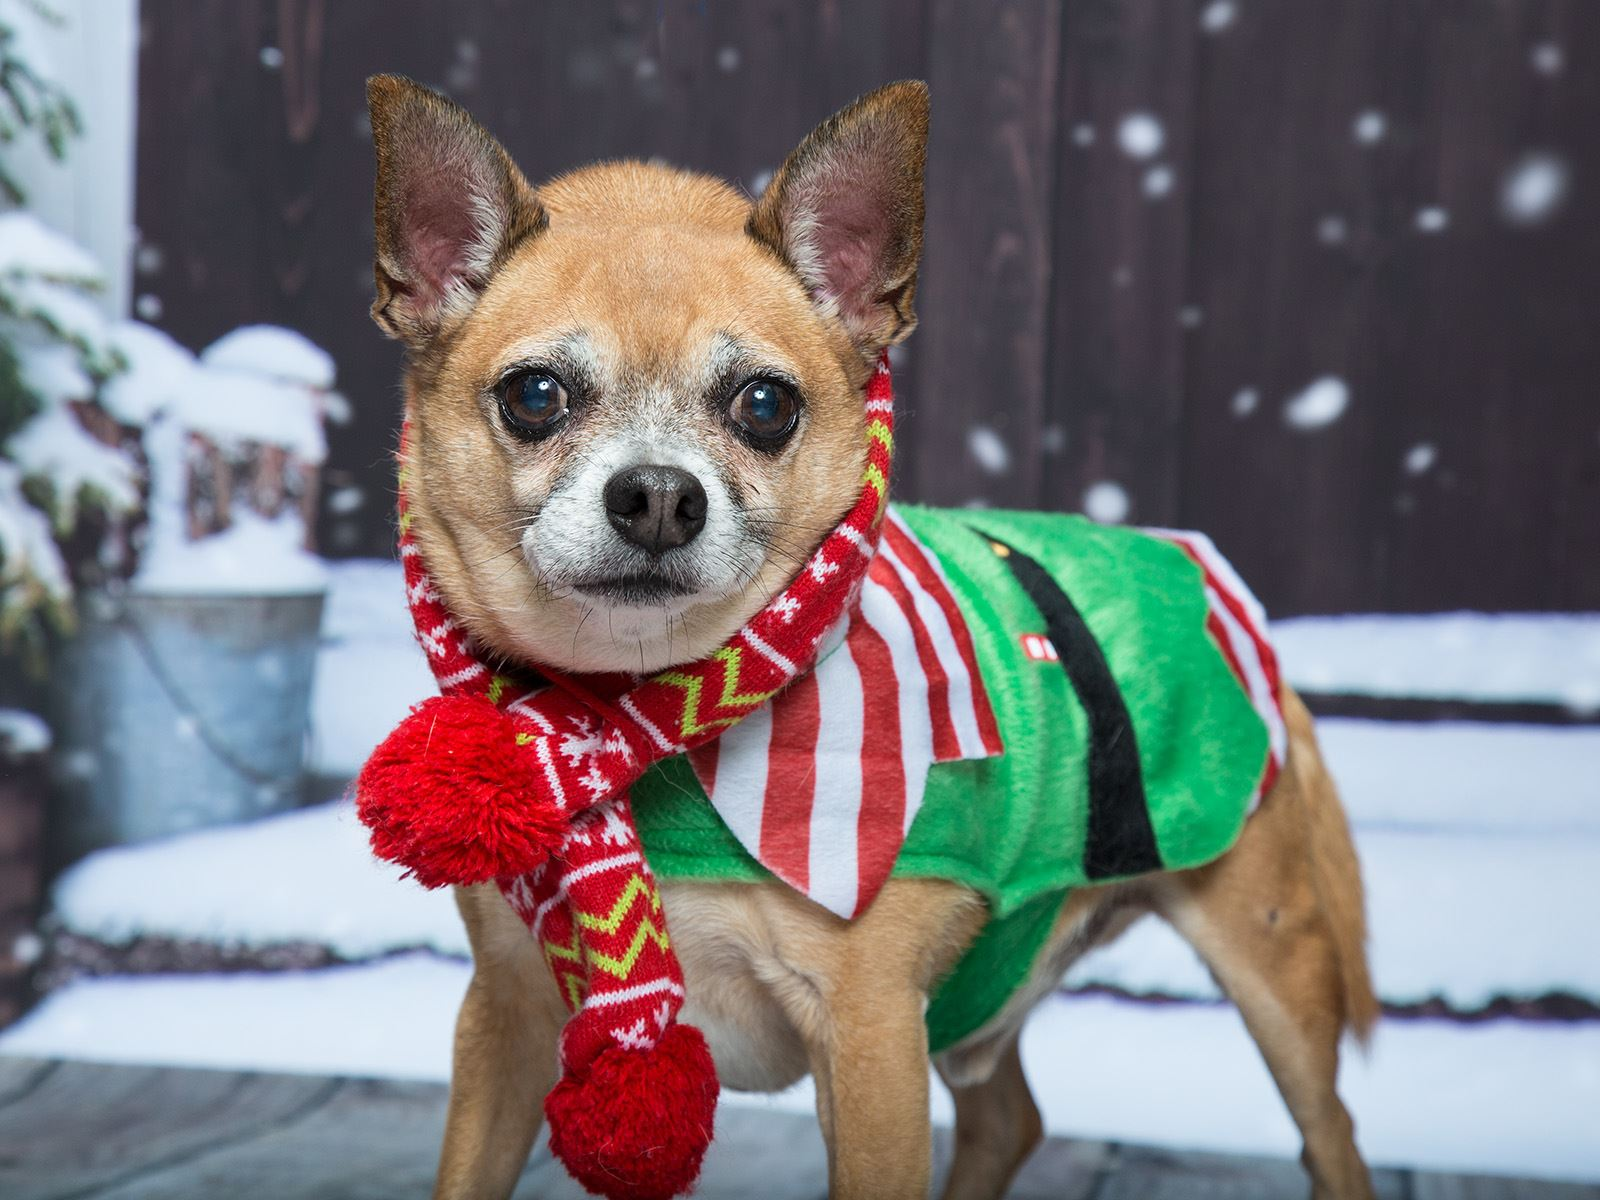 Photo of a small brown dog wearing a holiday elf outfit.